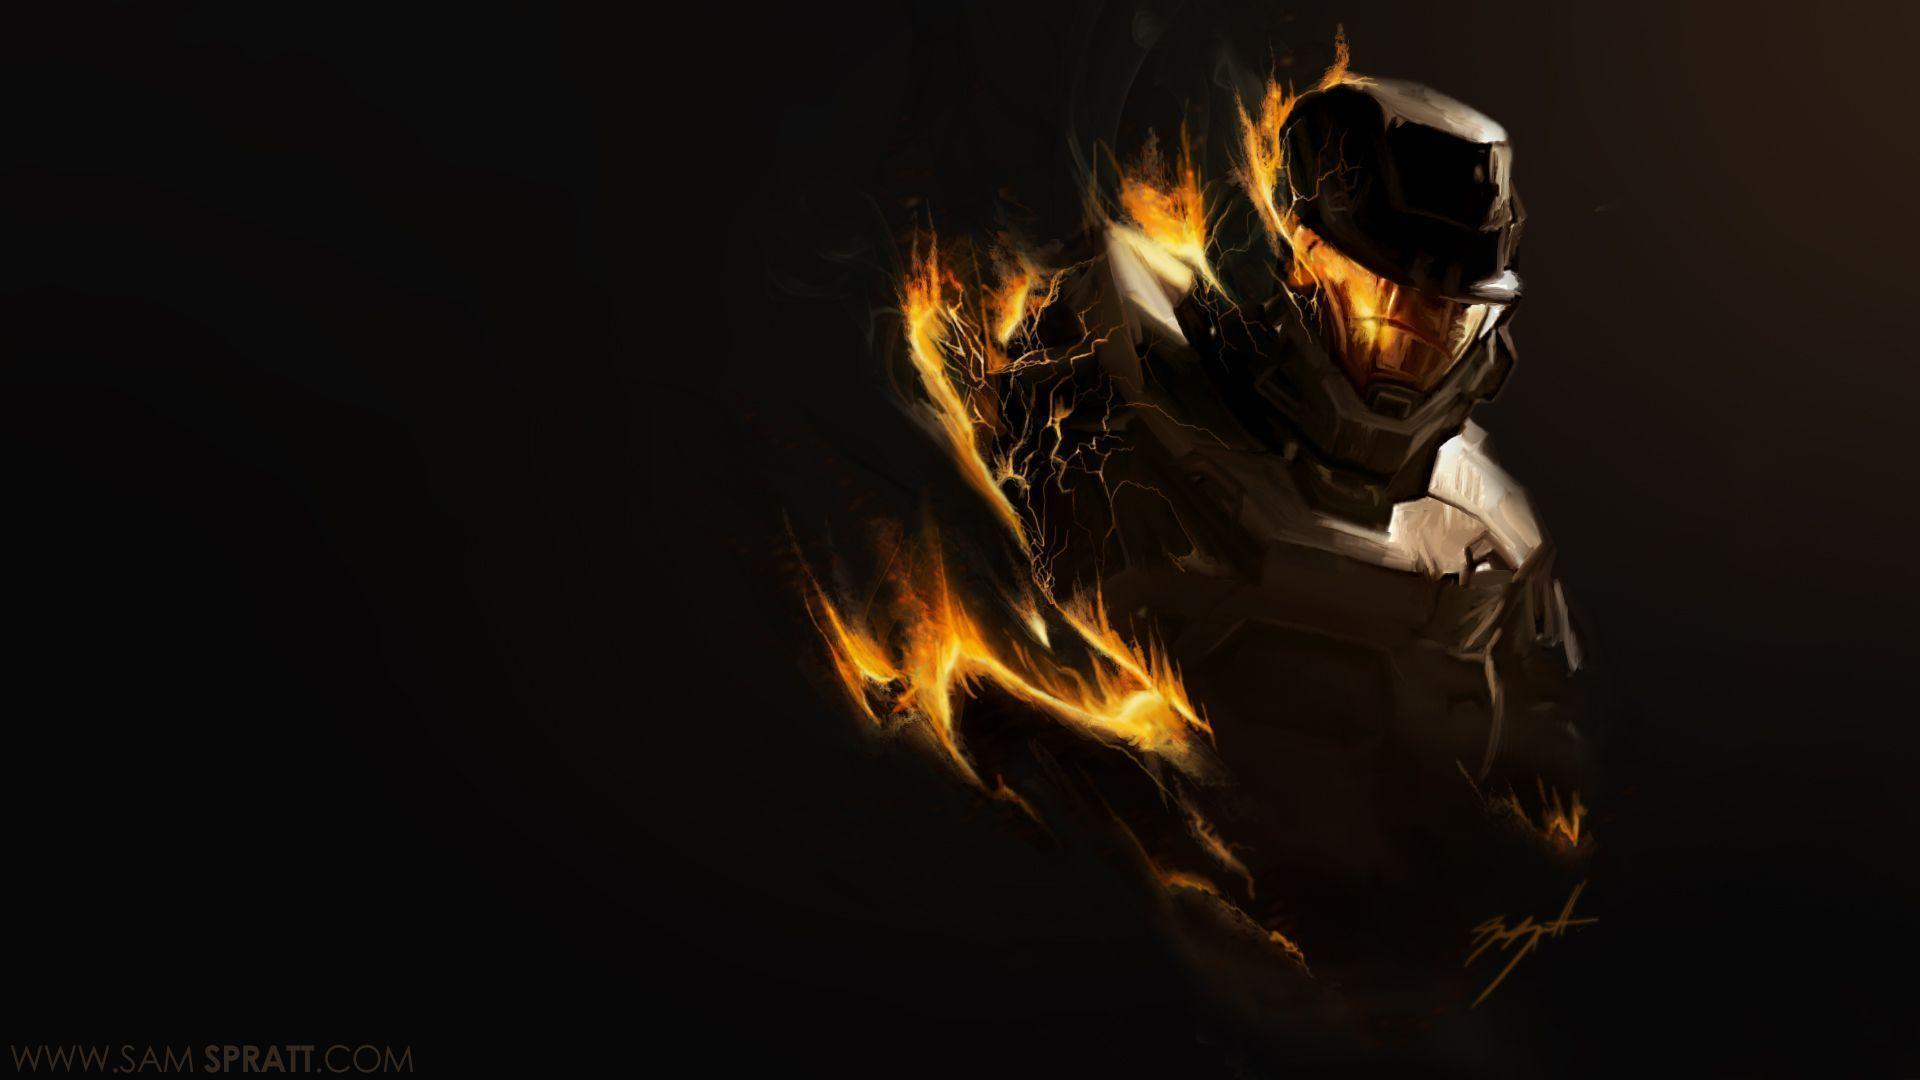 Cool Battlefield 4 Fire Armor In Black Background: Halo Reach Wallpapers 1080p